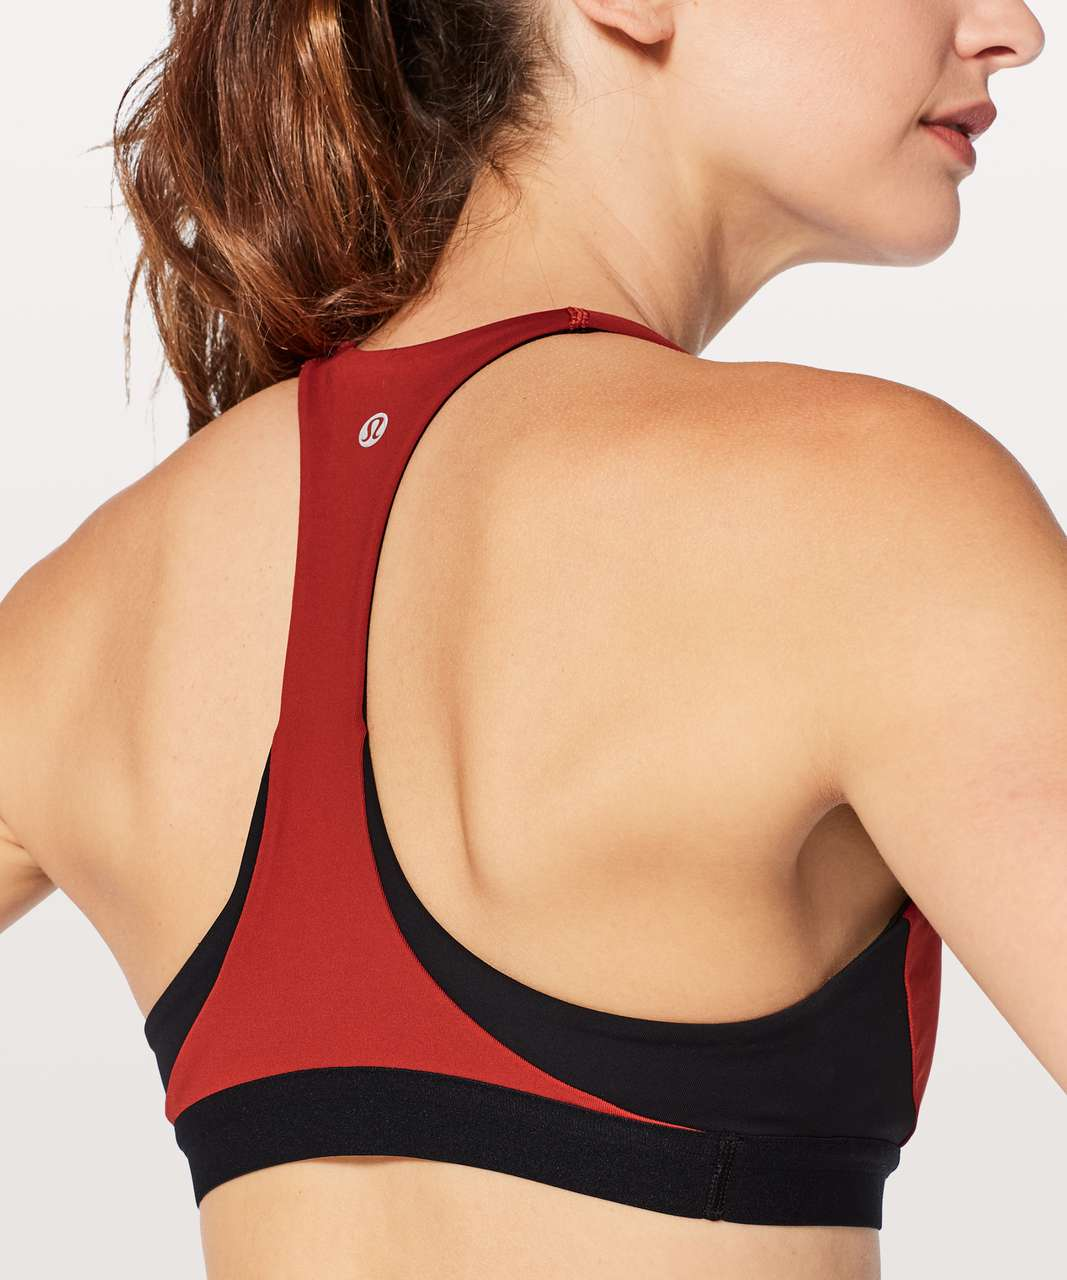 Lululemon Box It Out Bra - Bonfire / Black